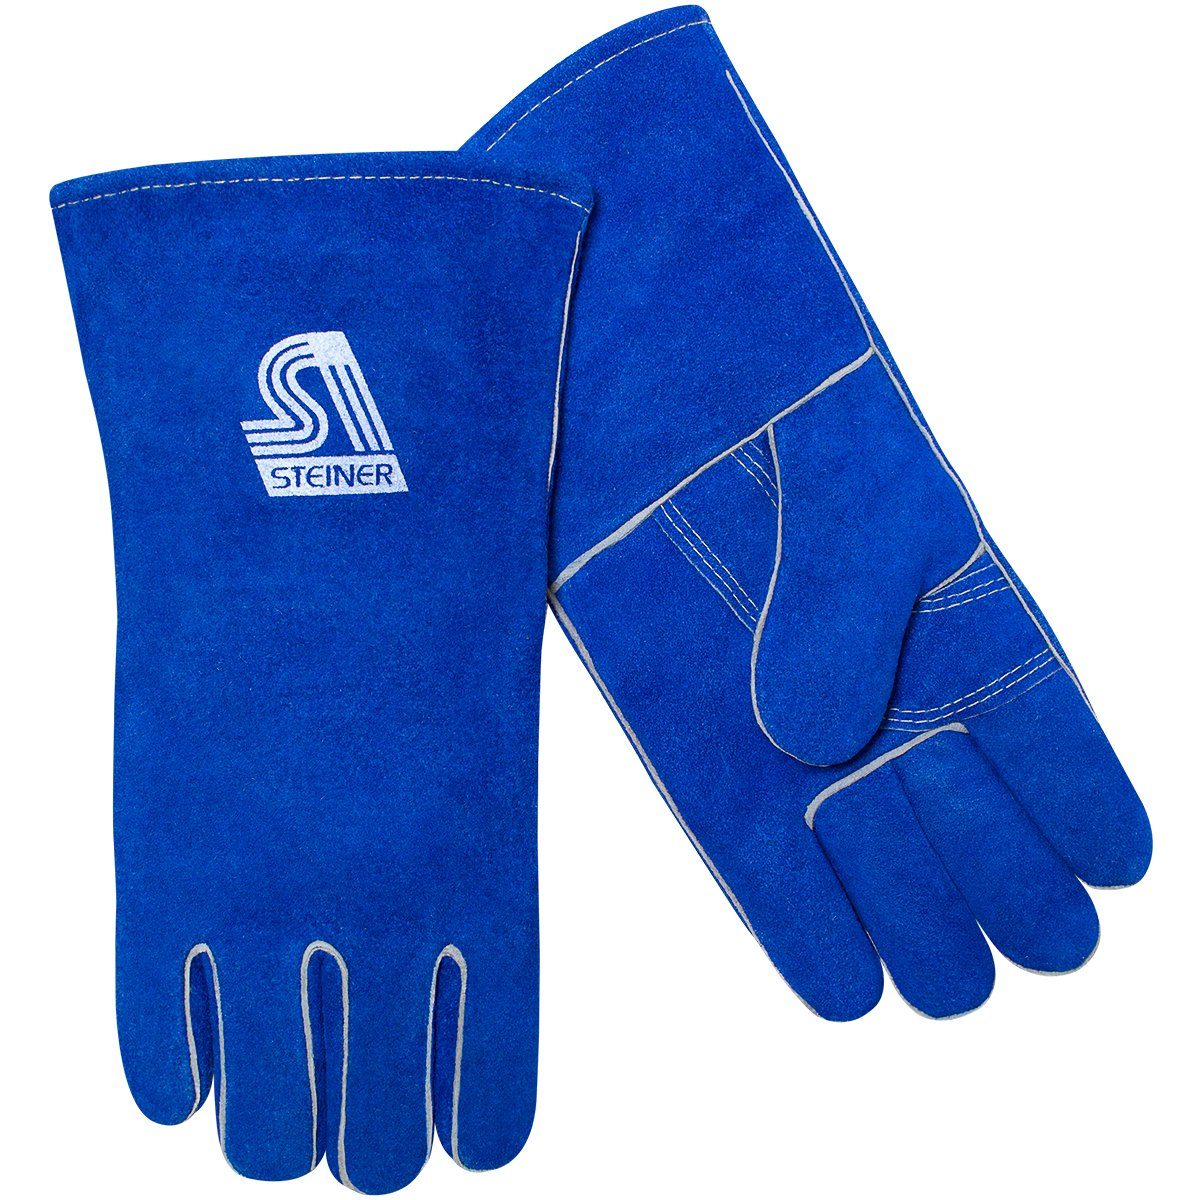 Steiner 02509F-X ThermoCore Foam Lined Shoulder Split Cowhide Stick Welding Gloves, Blue, X-Large, (12-Pack) by Steiner (Image #1)